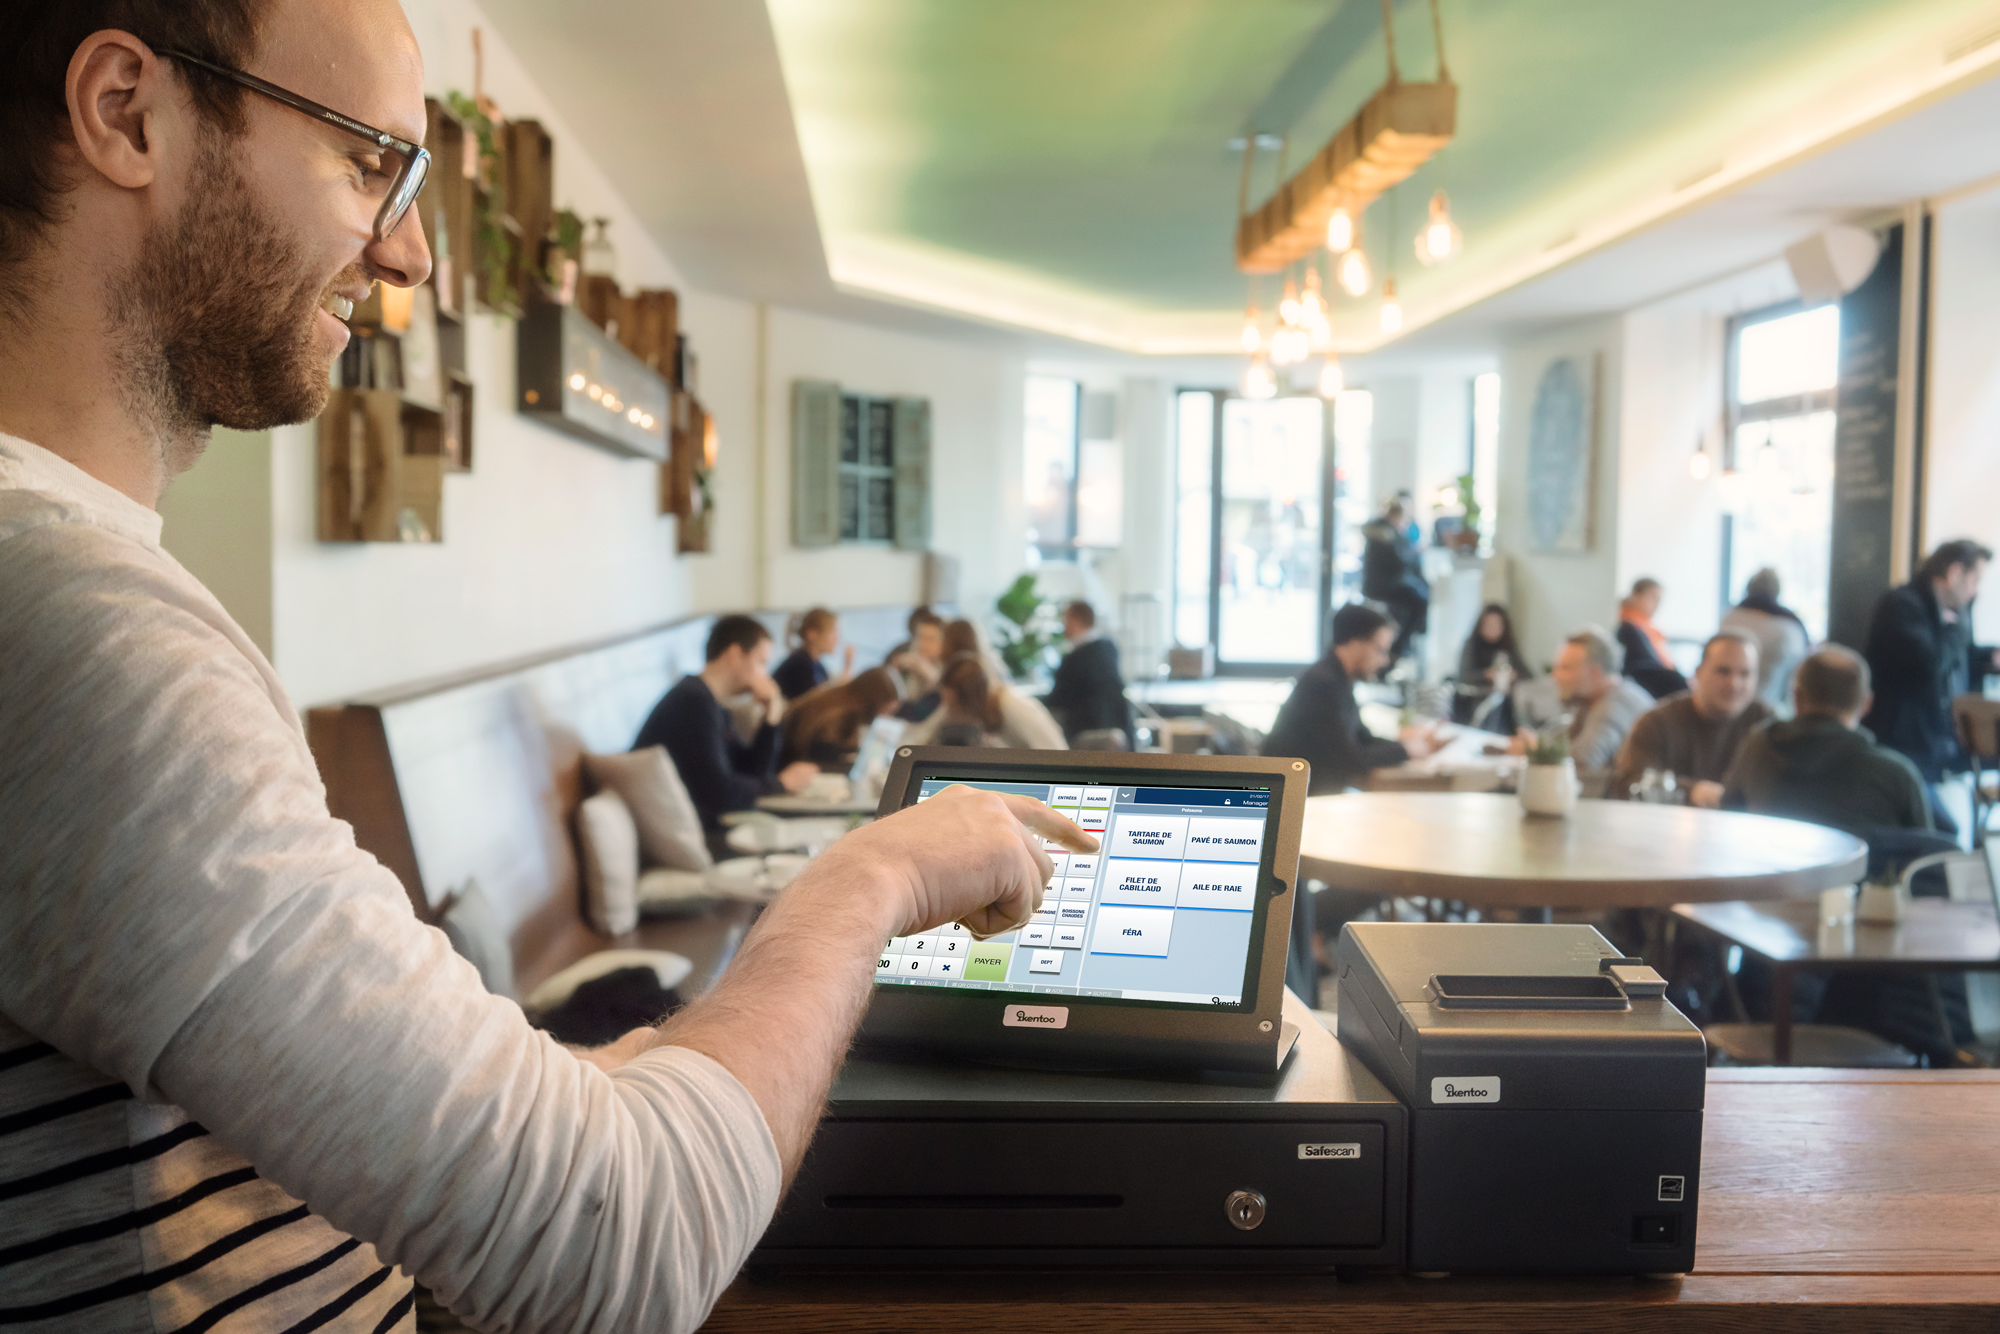 iKentoo: iPad solution for your restaurant